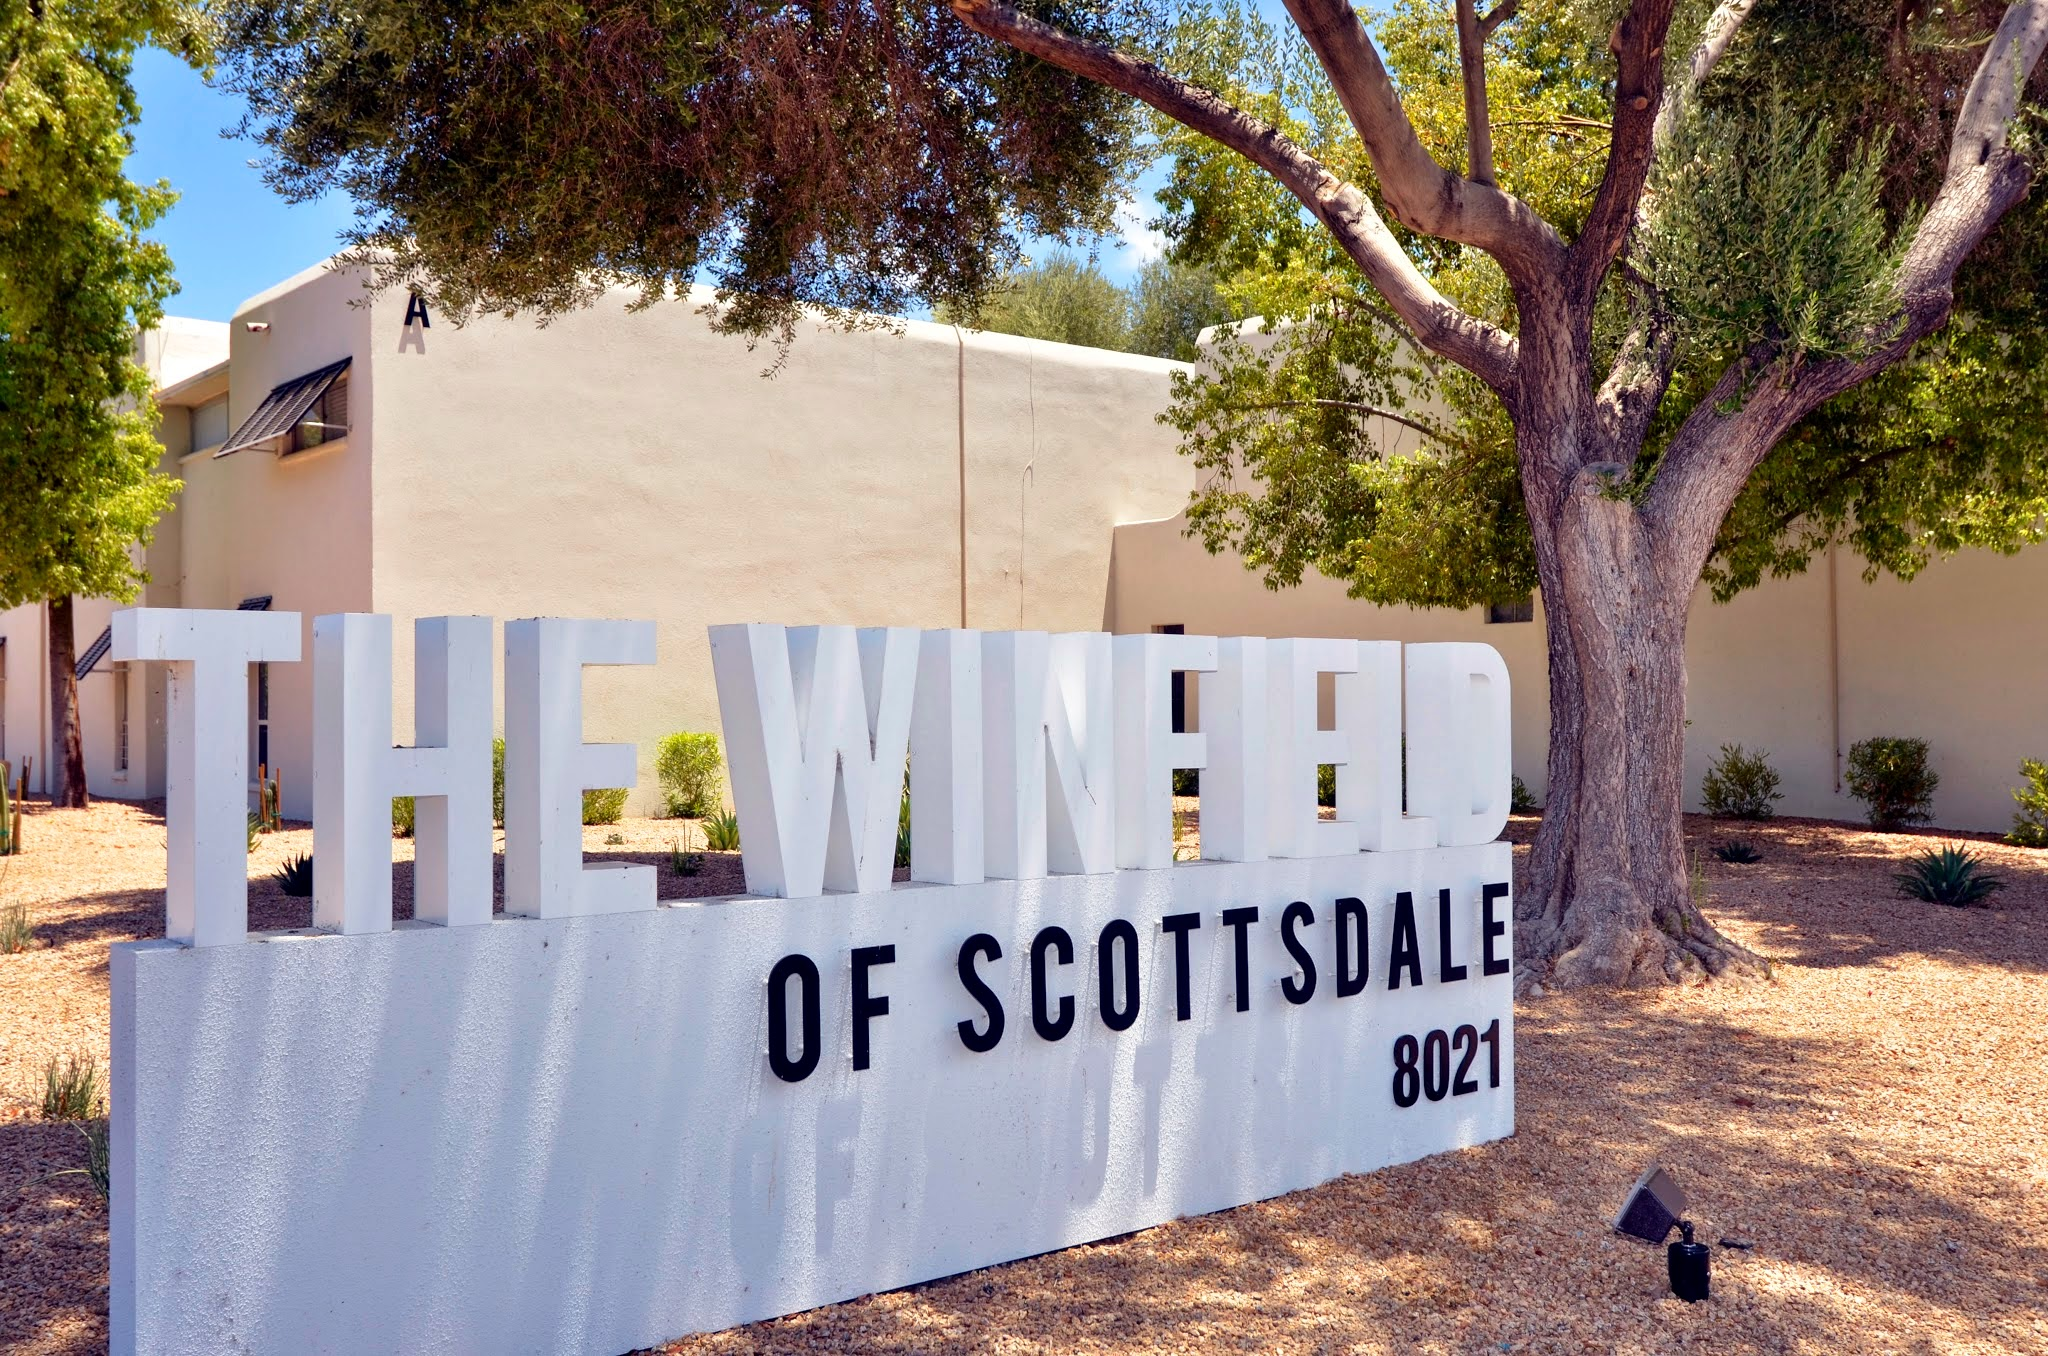 Apartments for Rent at The Winfield of Scottsdale Apartments in Scottsdale, Arizona